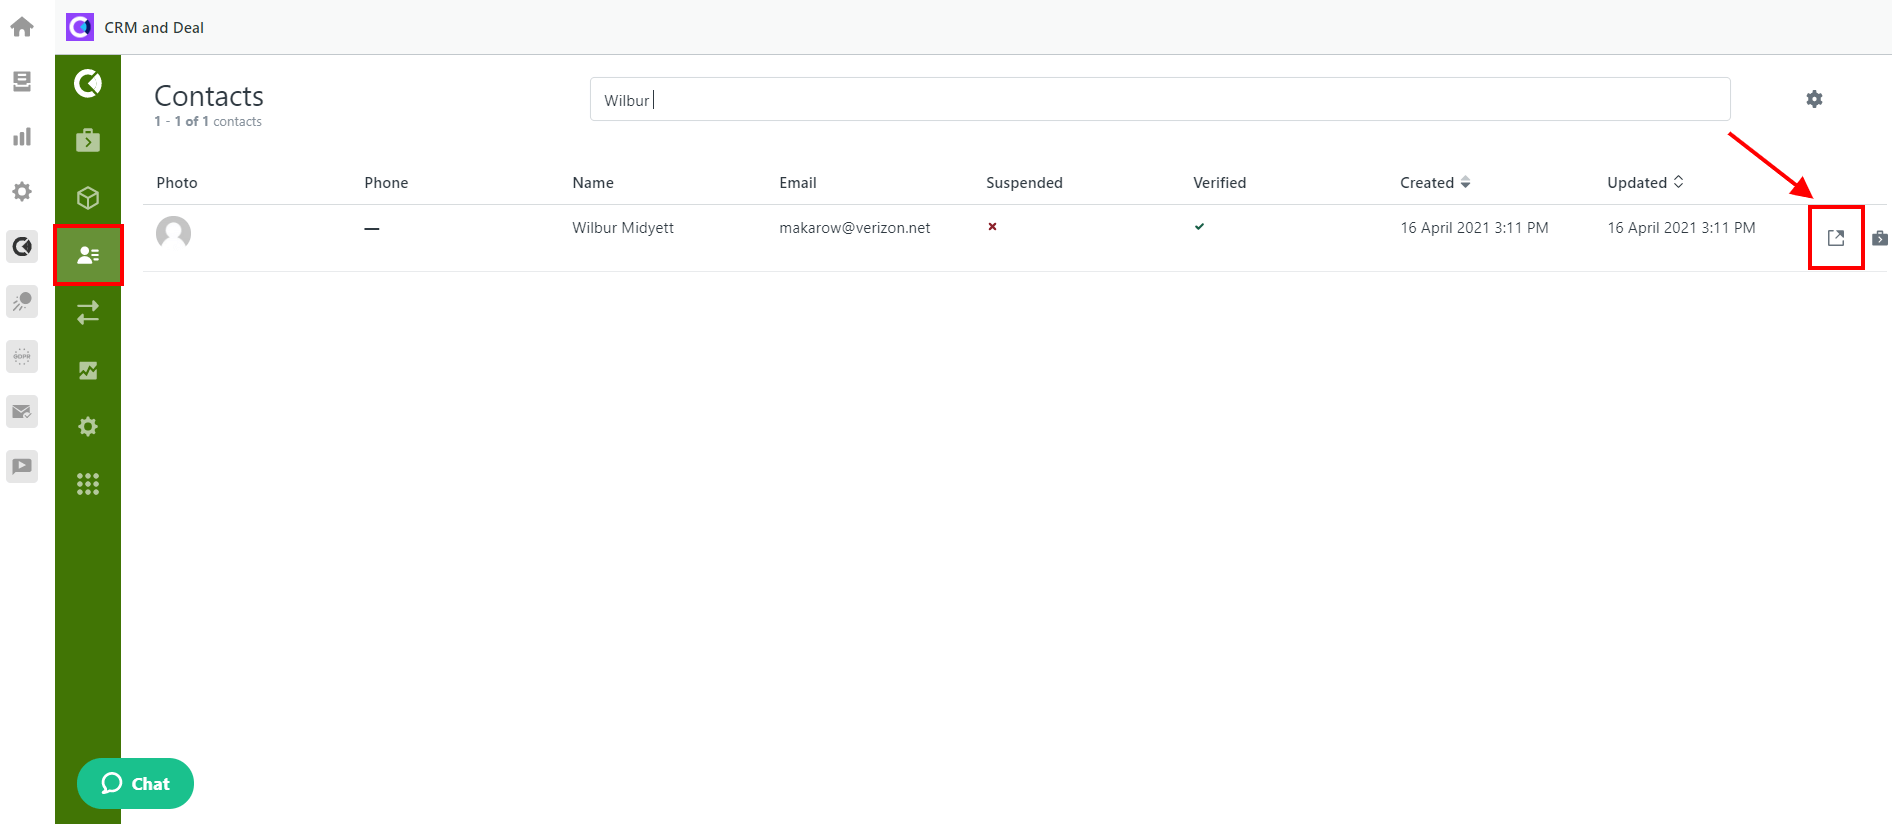 CRM And Deals For Zendesk Contact User Page